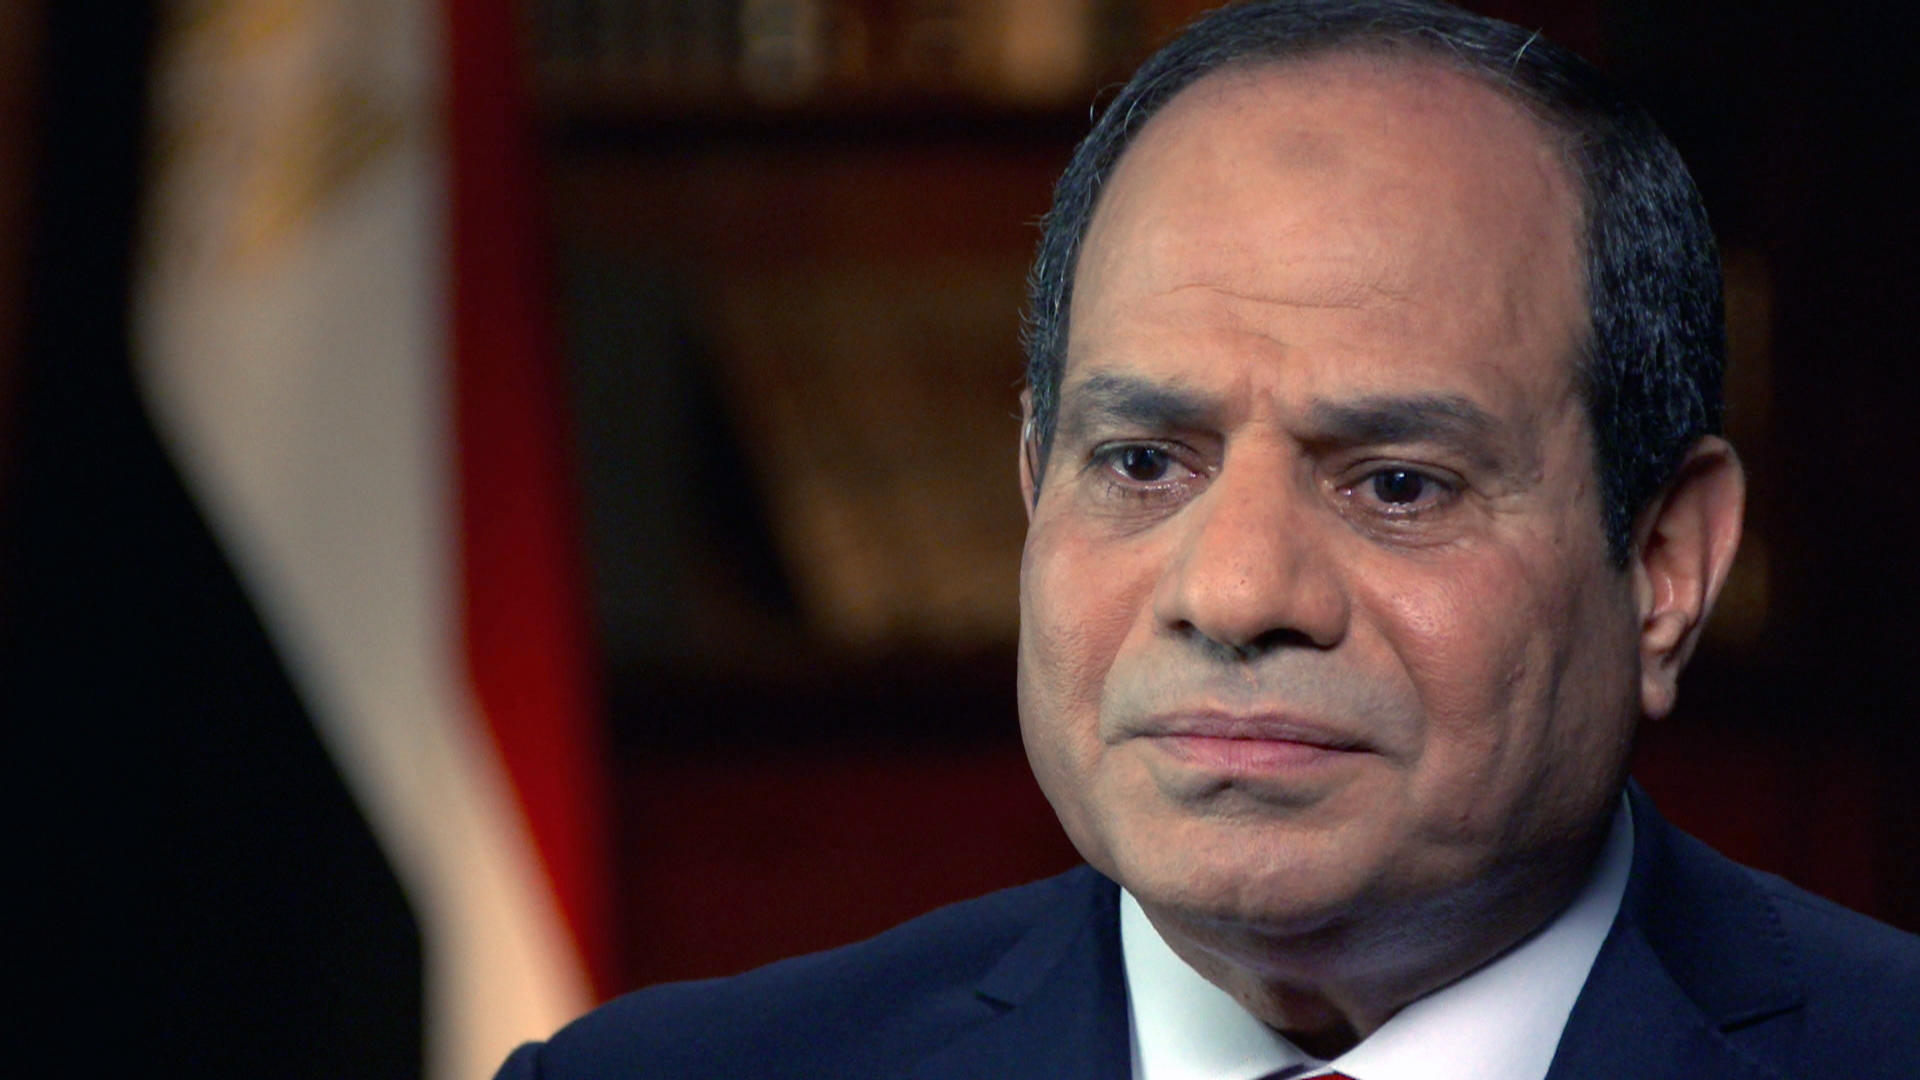 egypt s president el sisi denies ordering massacre in interview his government later tried to block